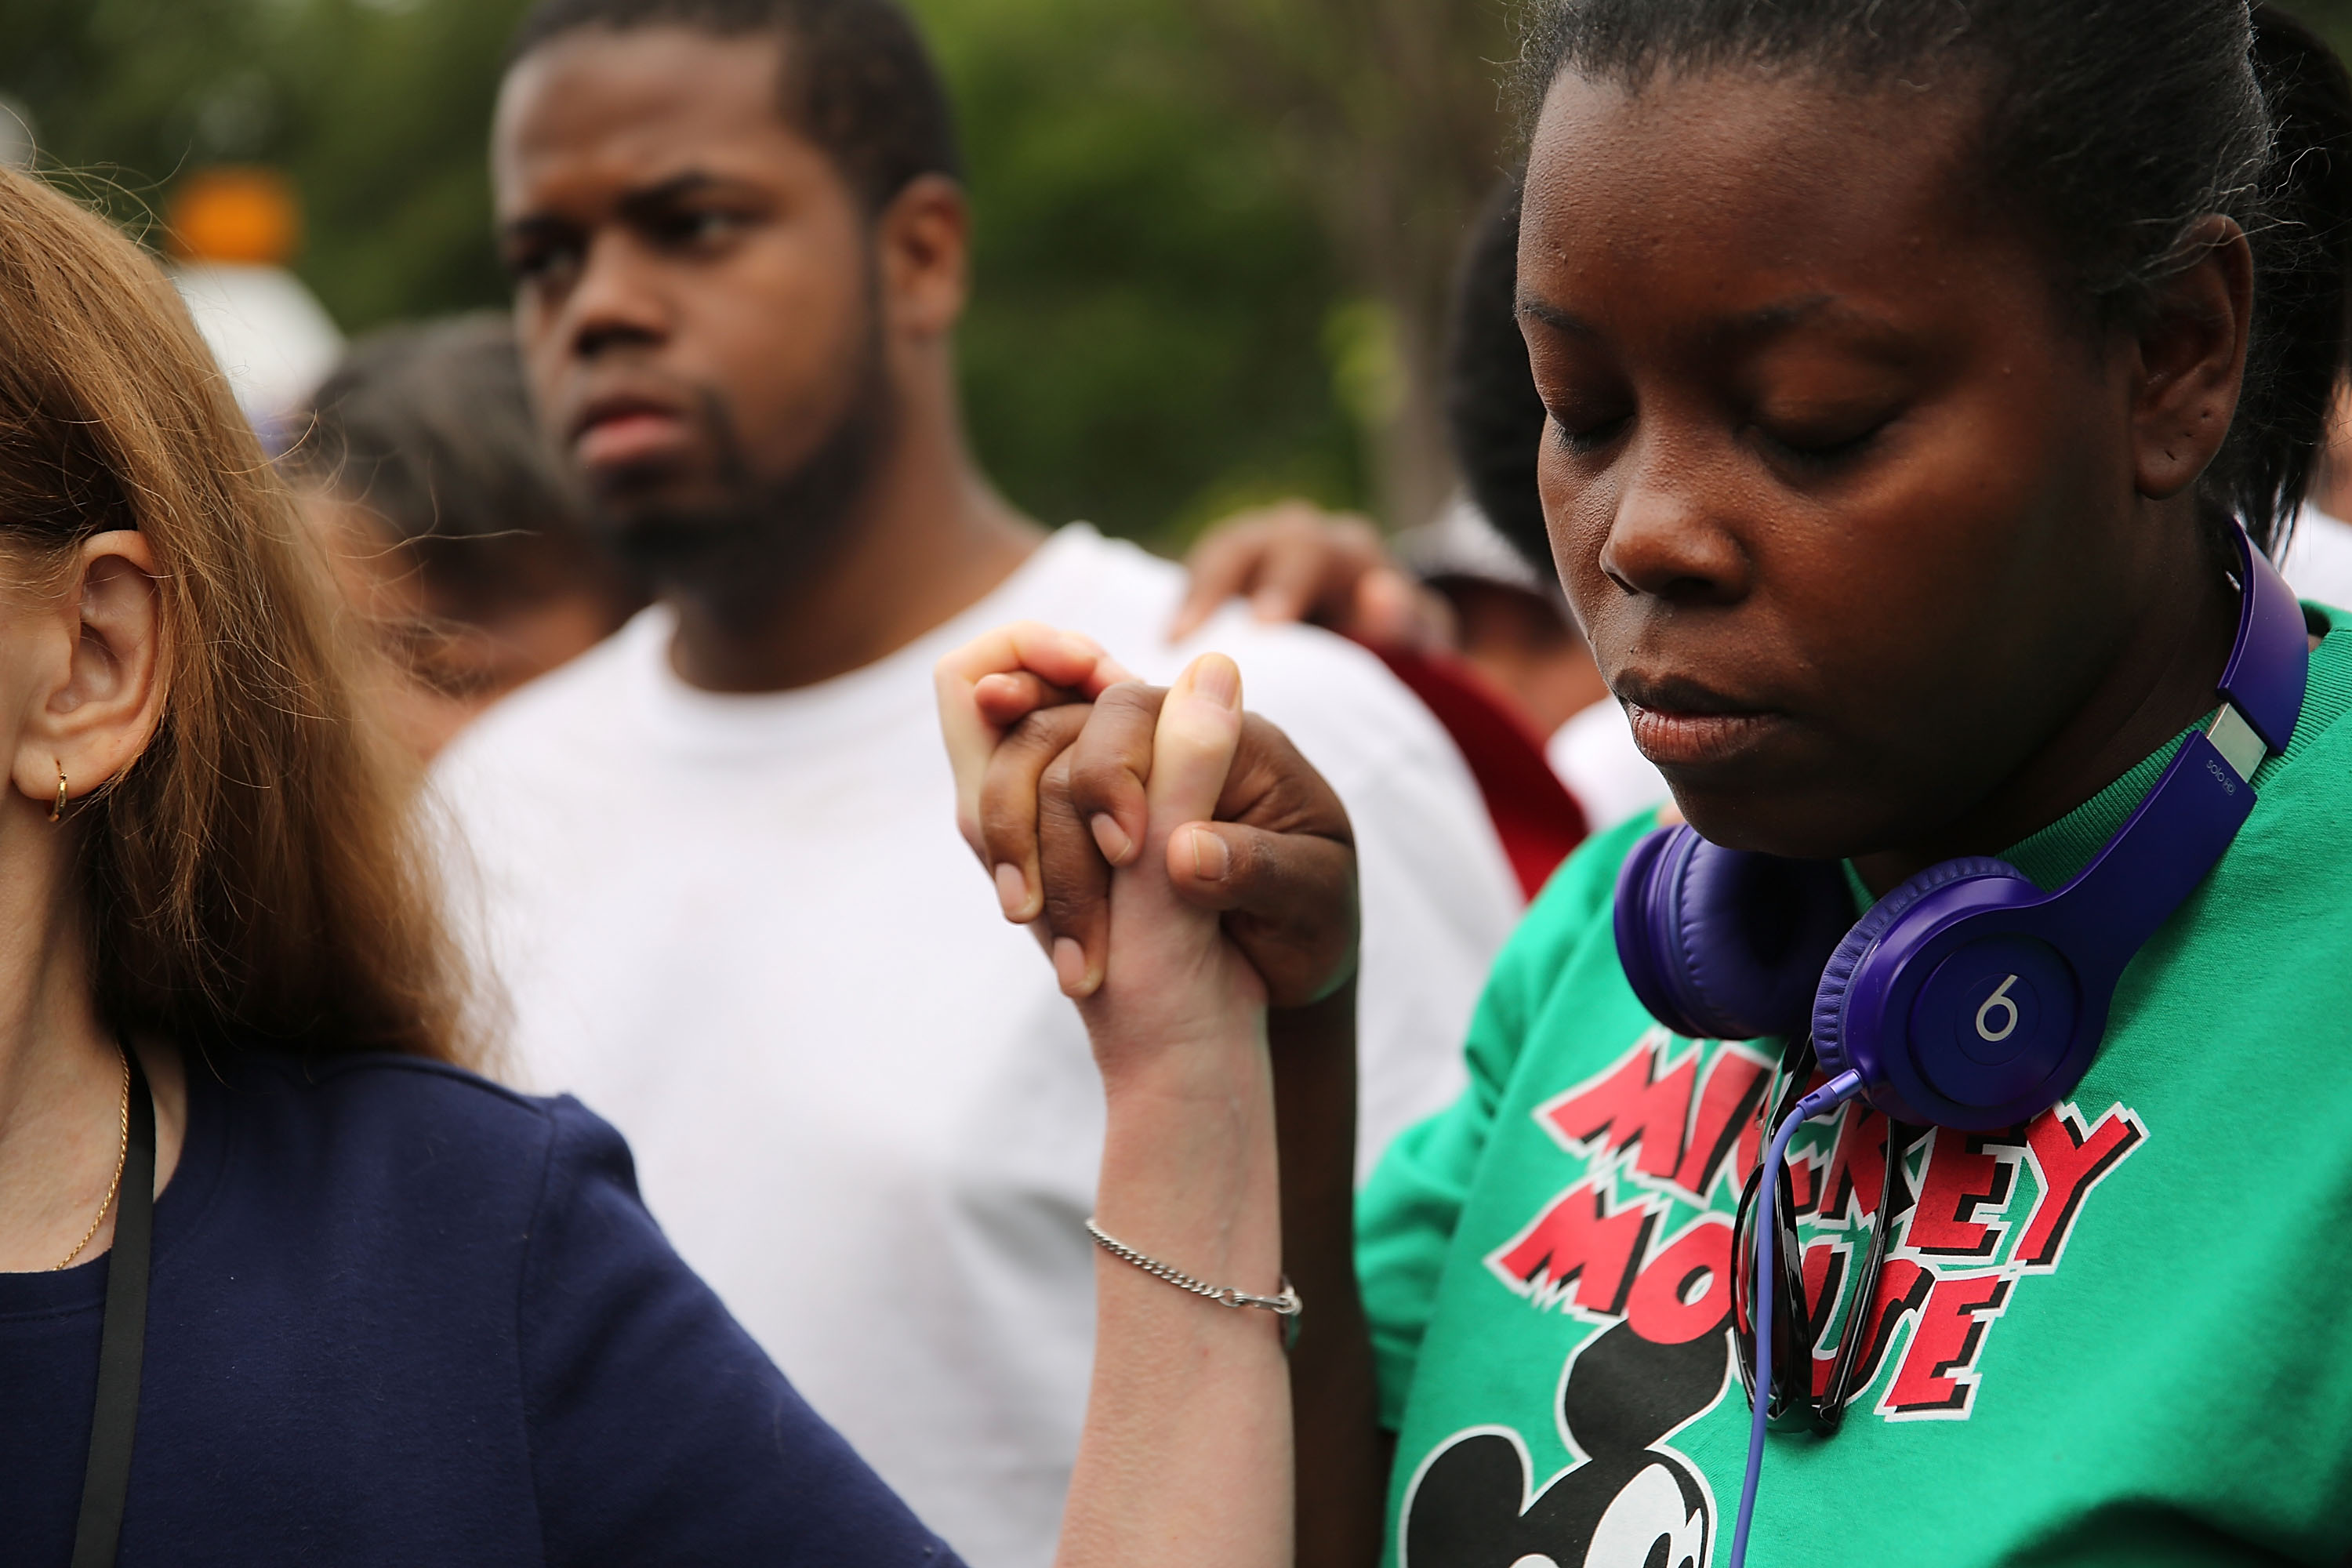 During a prayer, a Black teenage girl wearing a Mickey Mouse T-shirt holds the hand with a White girl during an Eric Garner protest.